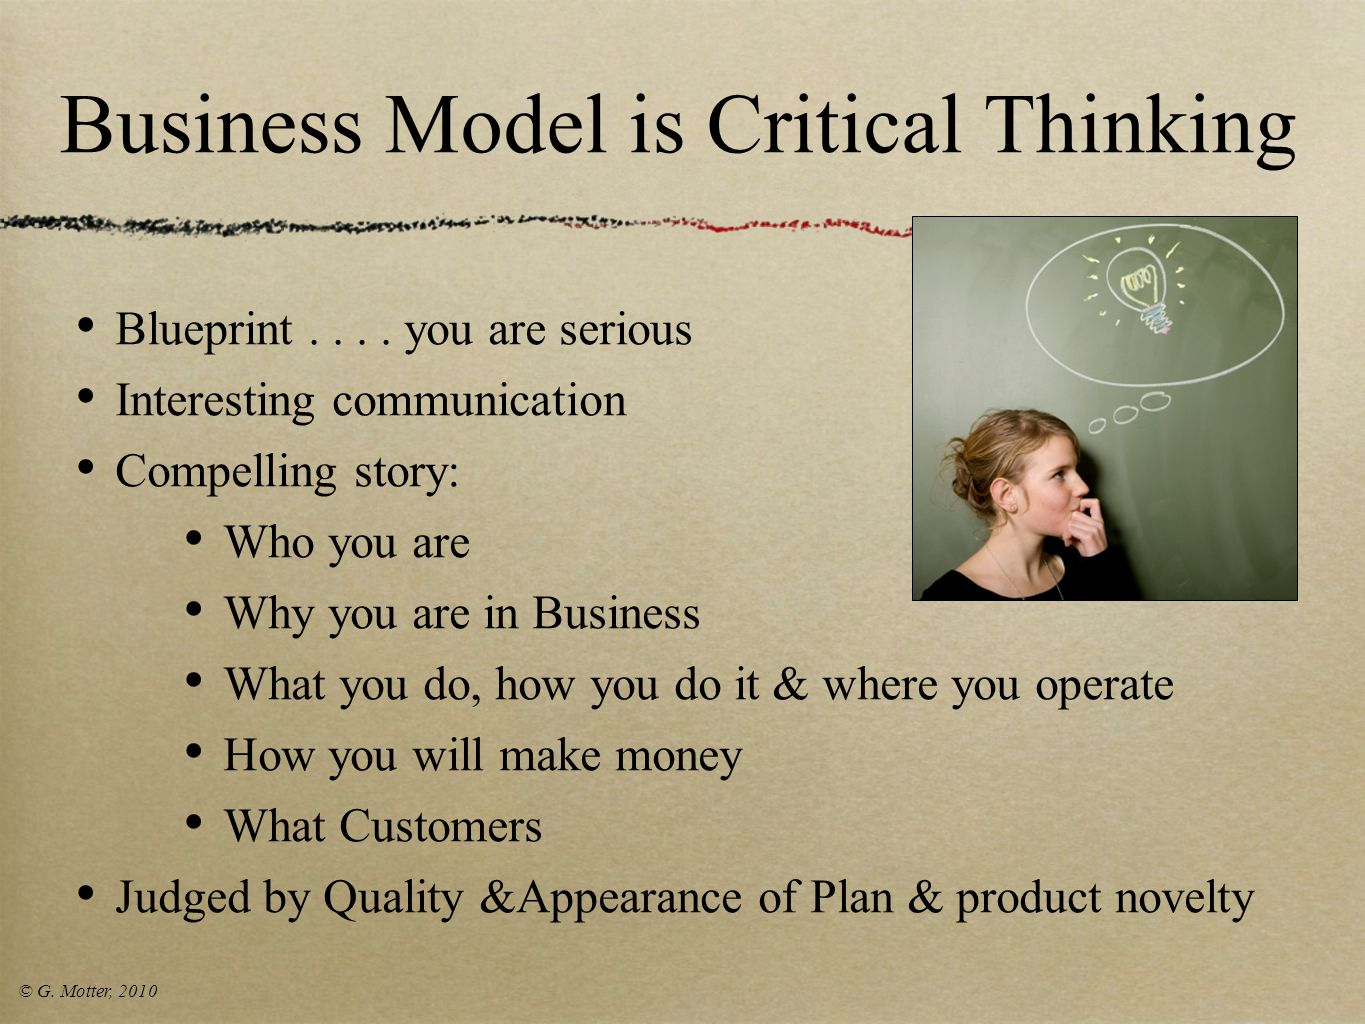 Business Model is Critical Thinking